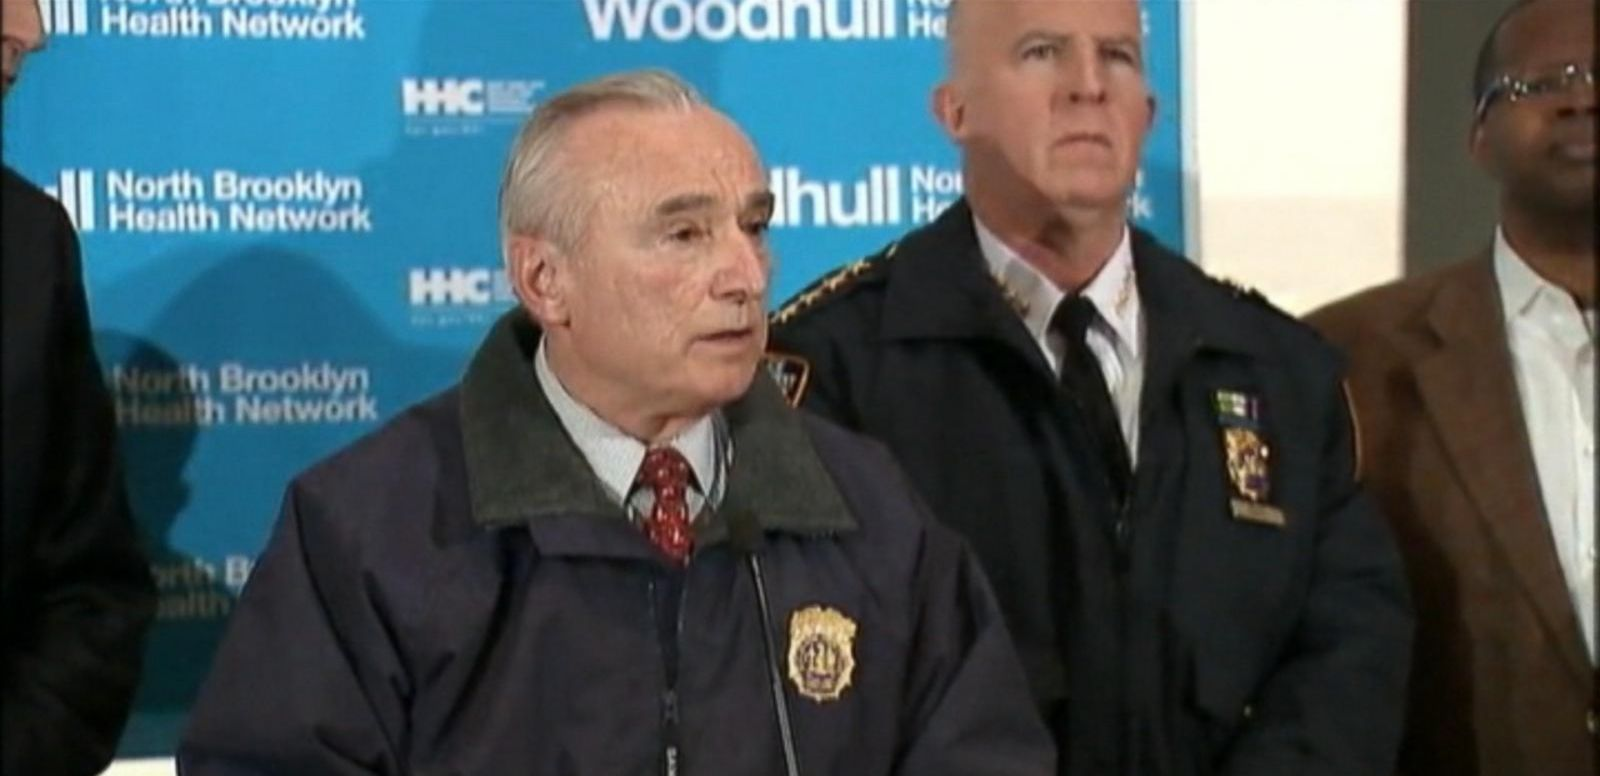 VIDEO: NYPD Commissioner William Bratton: BK Cops 'Targeted For the Uniform'